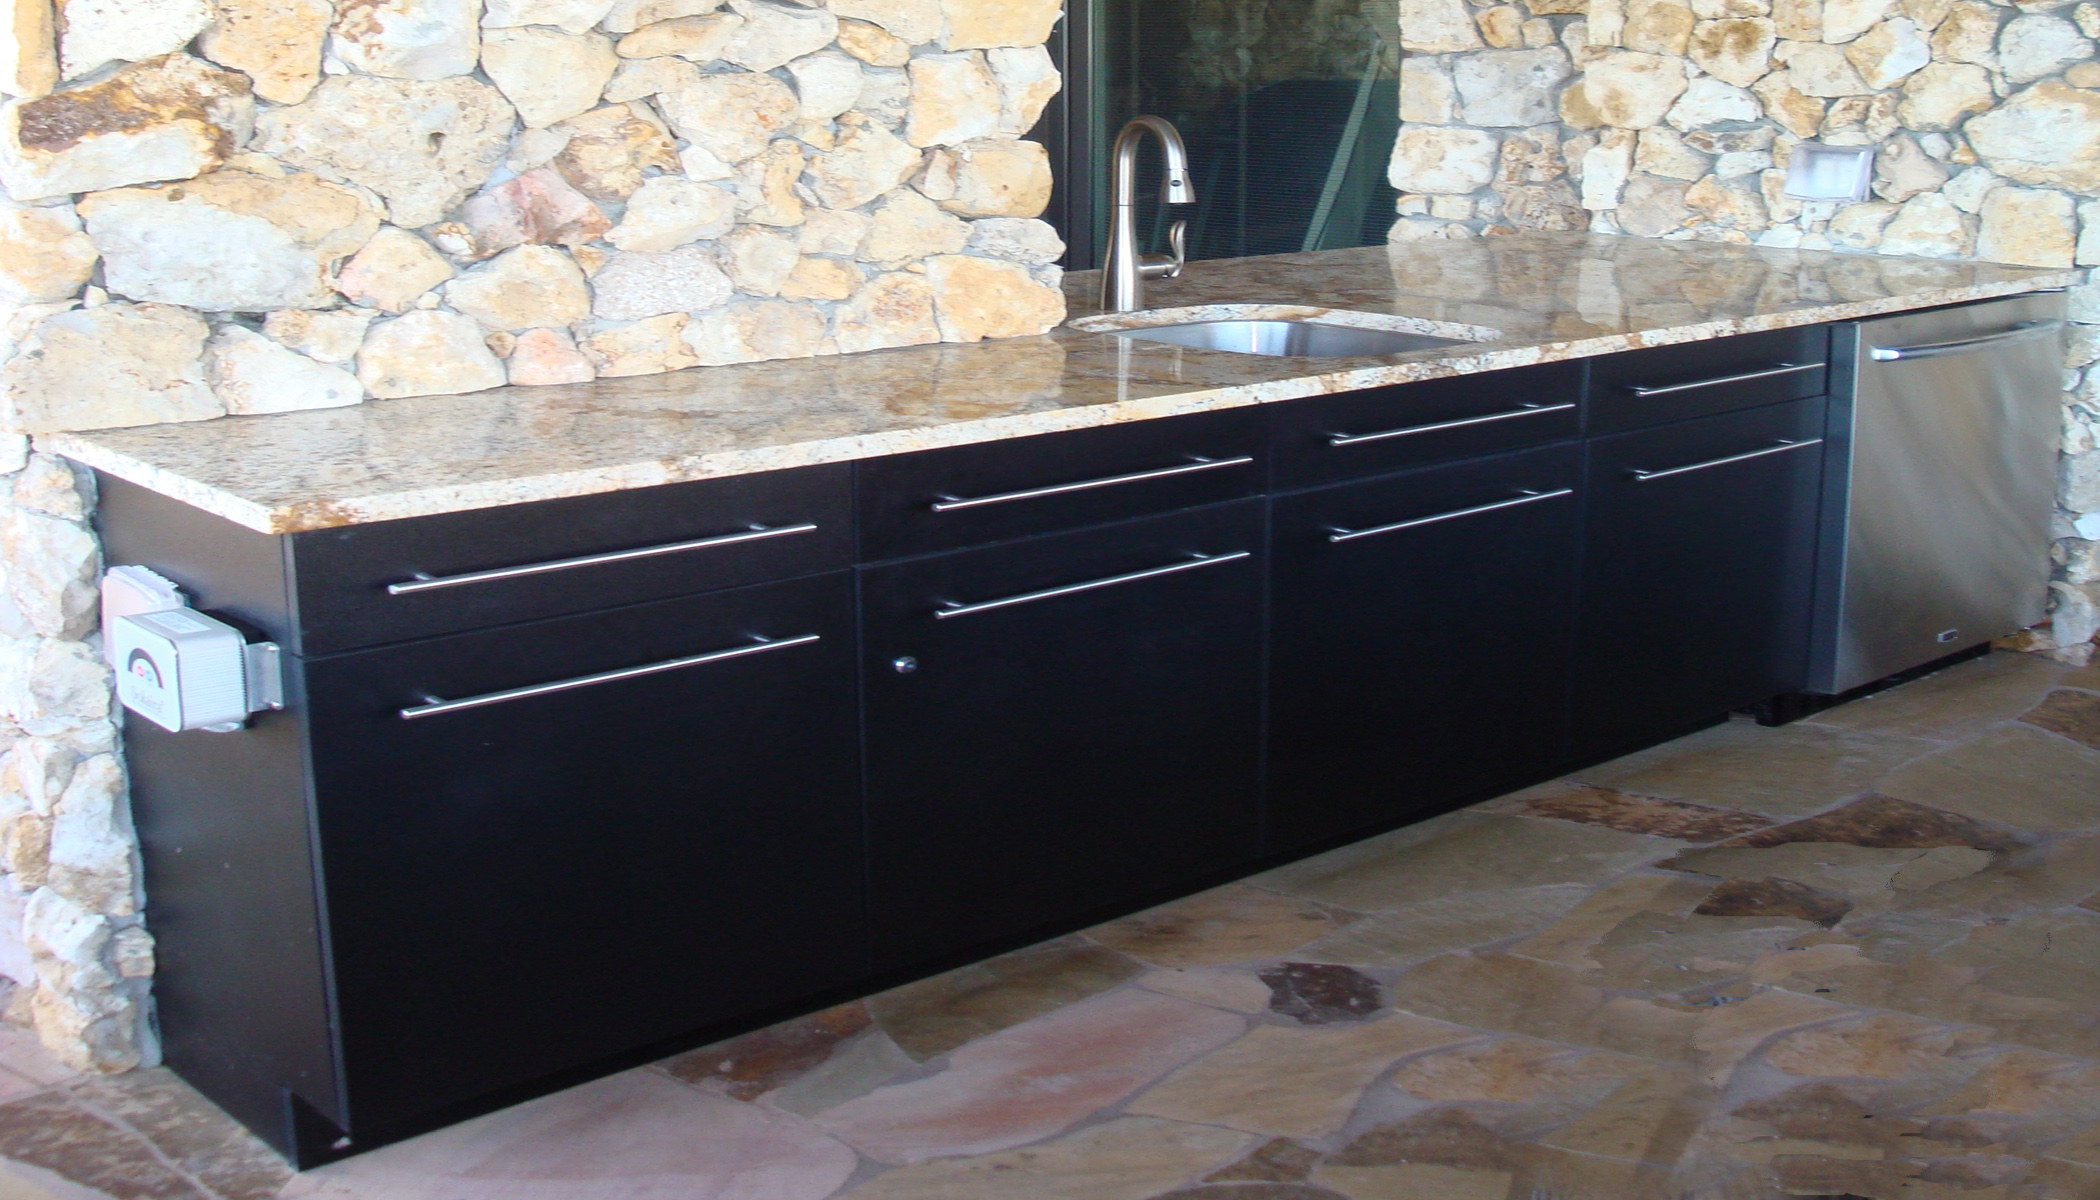 Outdoor Kitchen Experts See New Trends in Materials